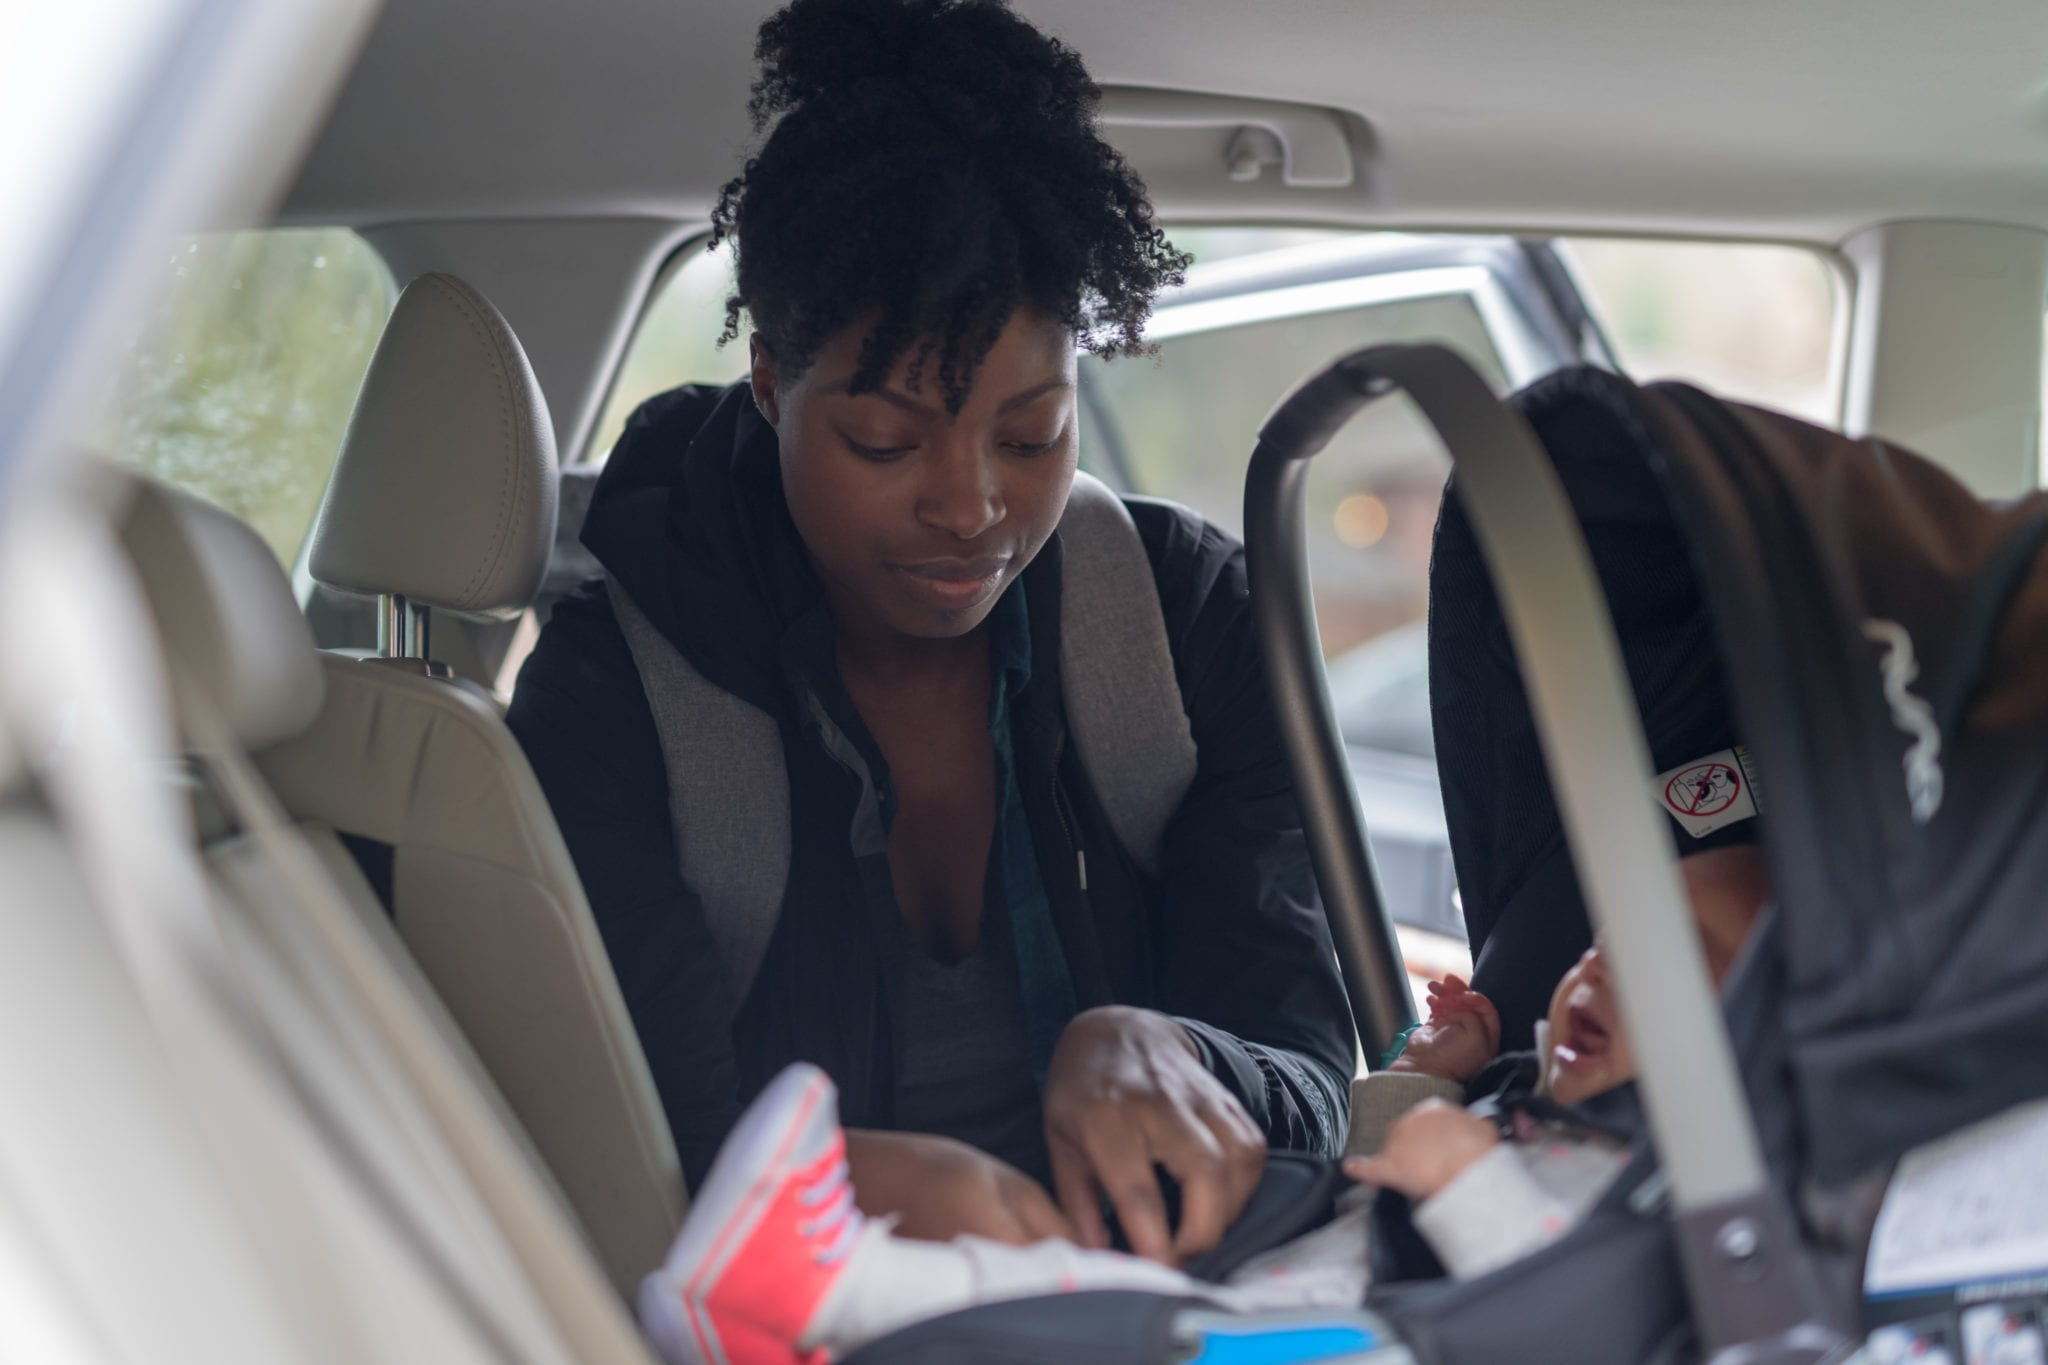 Mom puts her infant baby into the carseat